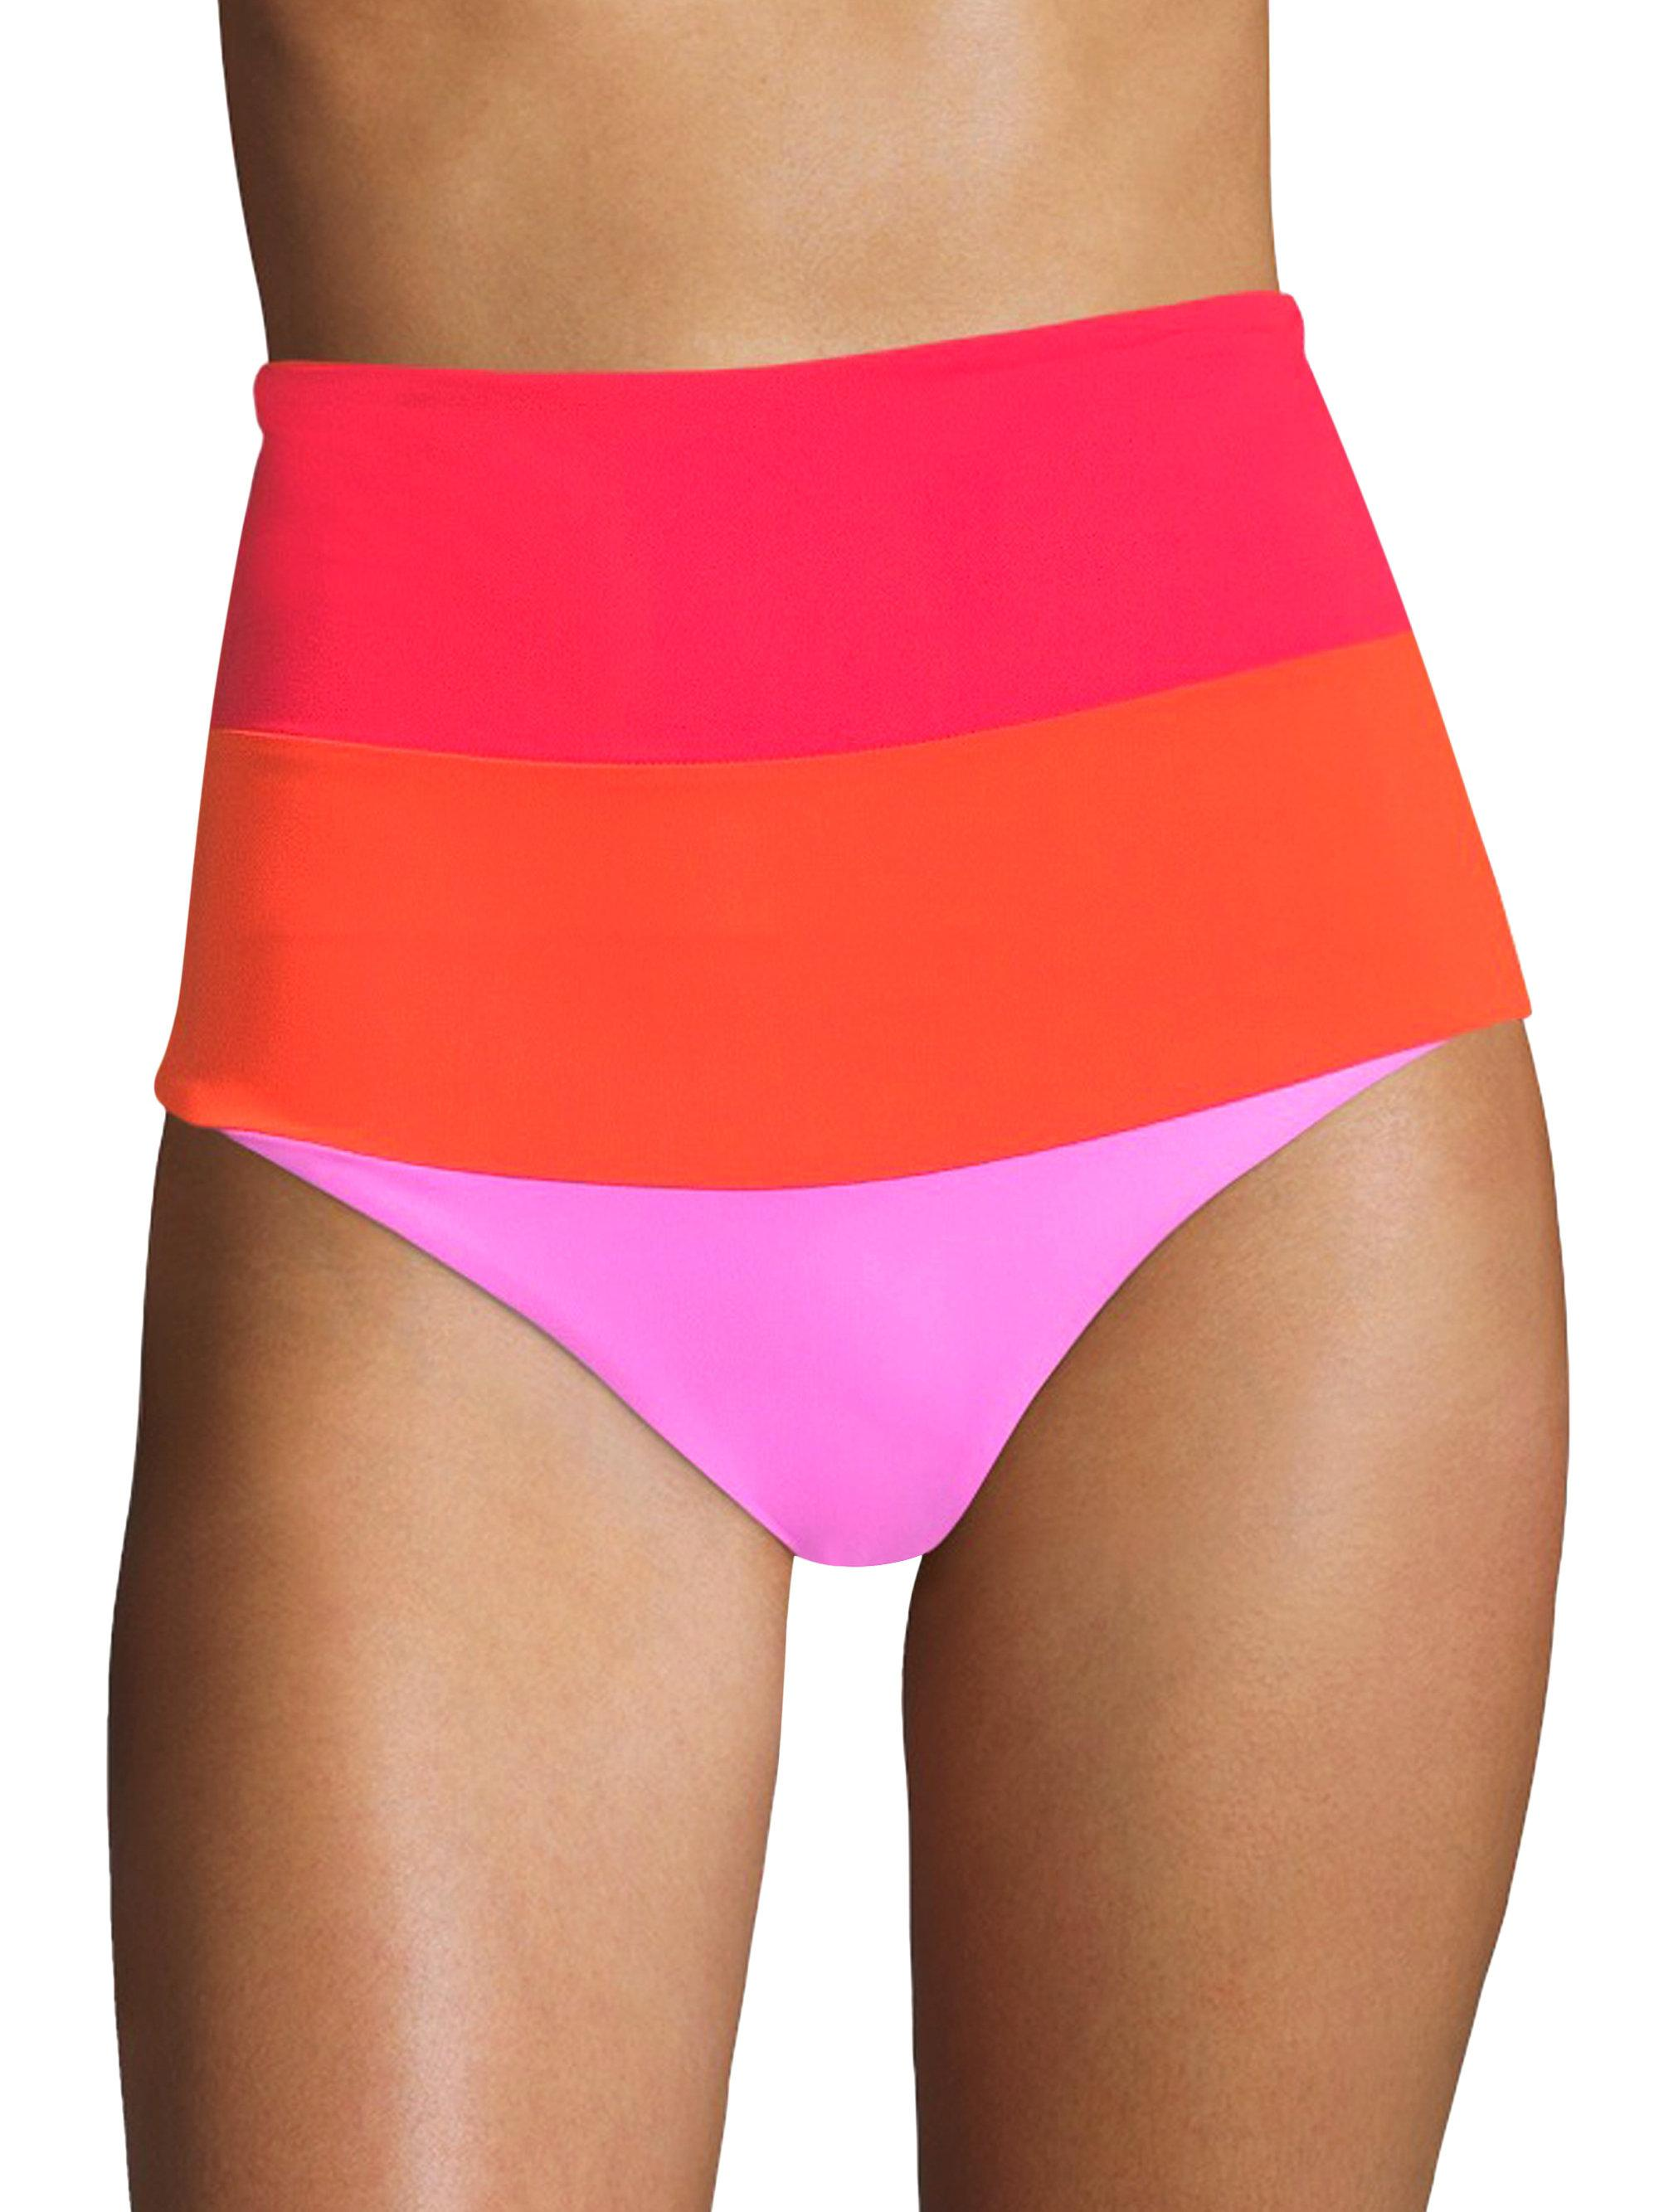 7b9ad4d571 Gallery. Previously sold at: Saks Fifth Avenue · Women's High Waisted  Bikini Bottoms